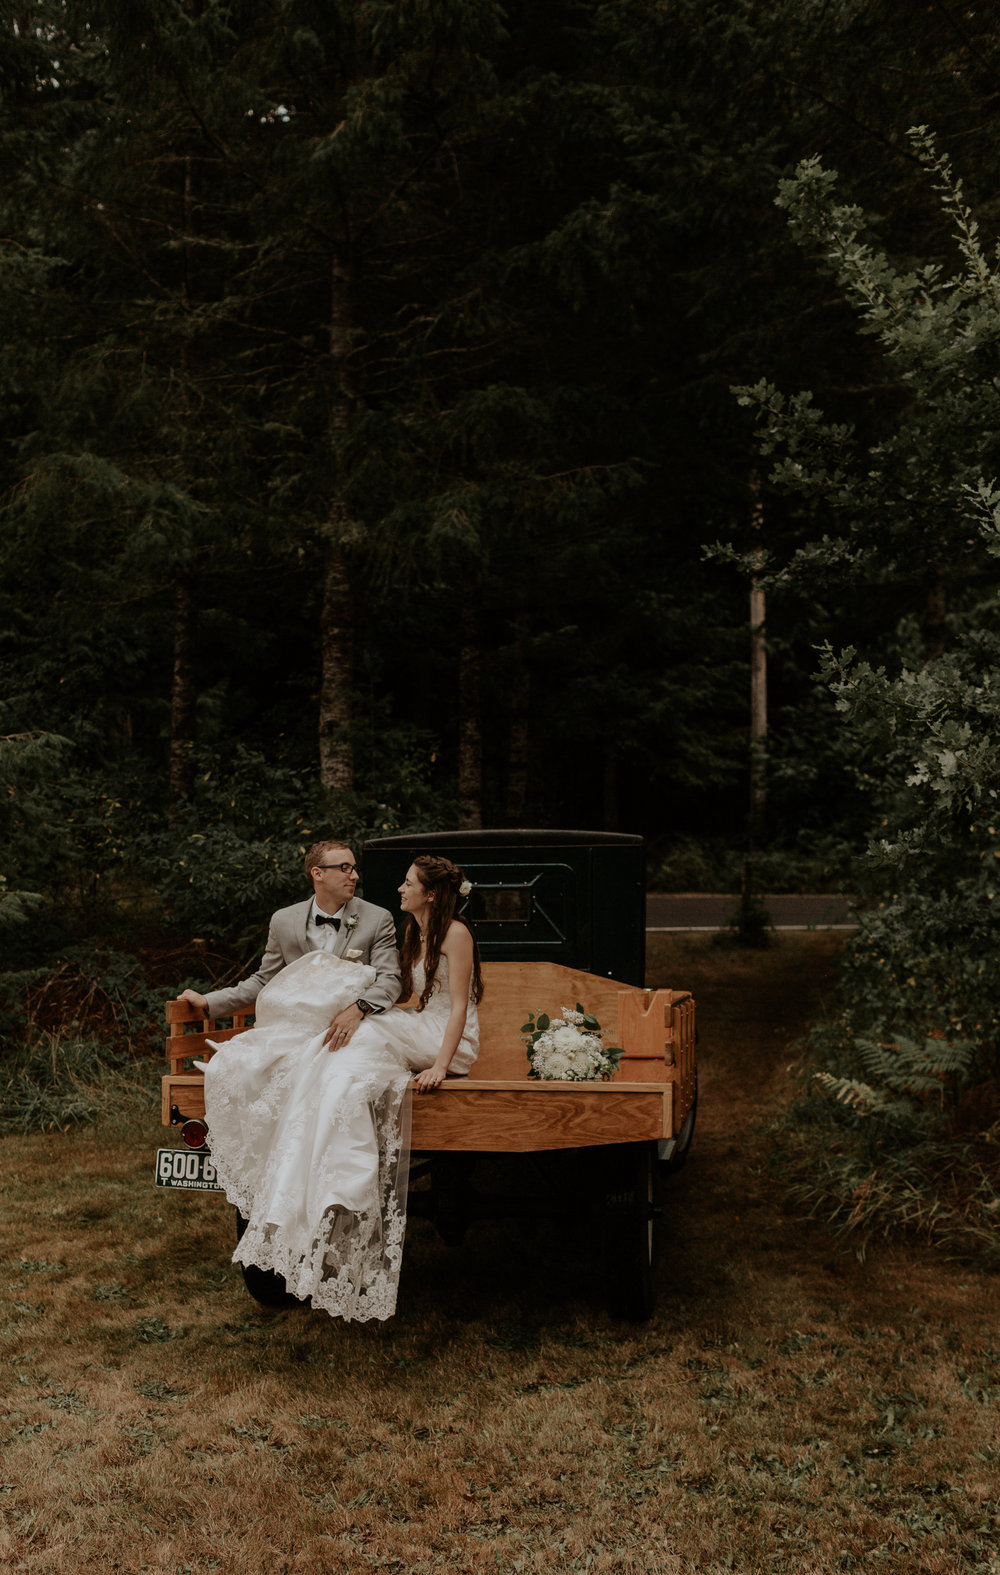 Port-Angeles-elopement-wedding-pnw-olympic-peninsula-photographer-portrait-kayladawnphoto-kayla-dawn-photography-olympic-national-park-136.jpg